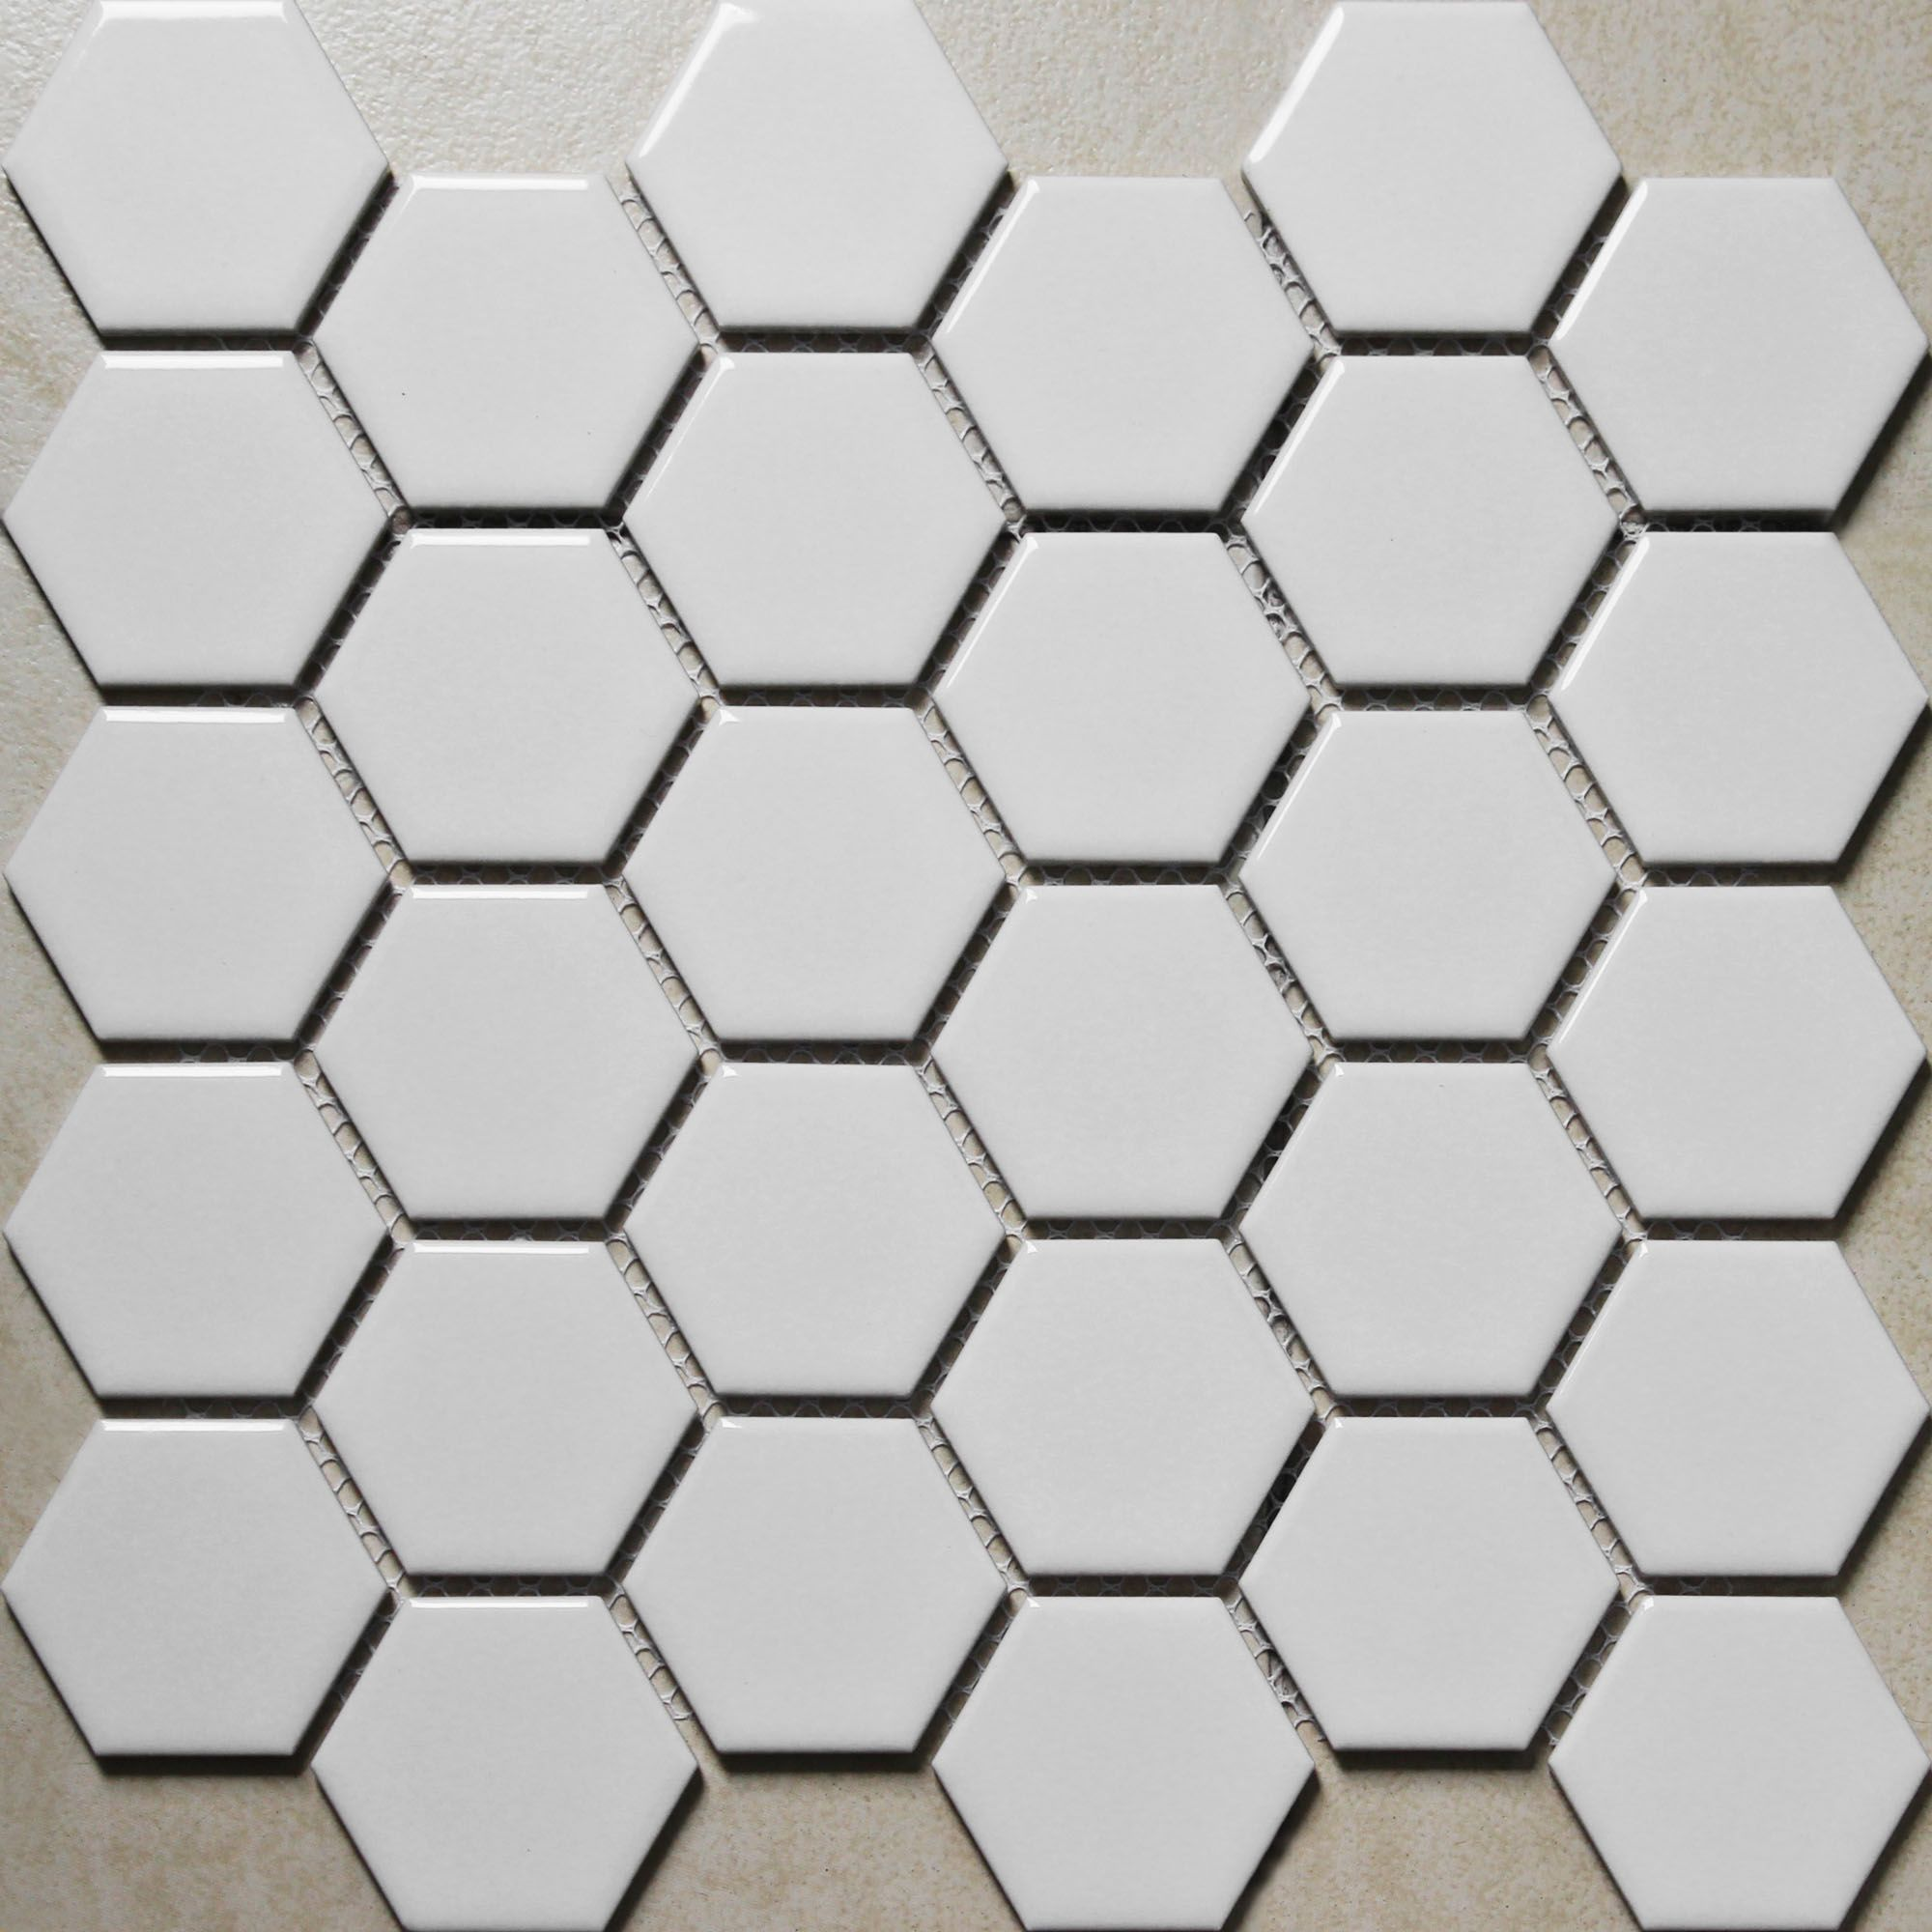 Blanc hexagonal grande mosa que de c ramique carreaux de for Carrelage blanc hexagonal